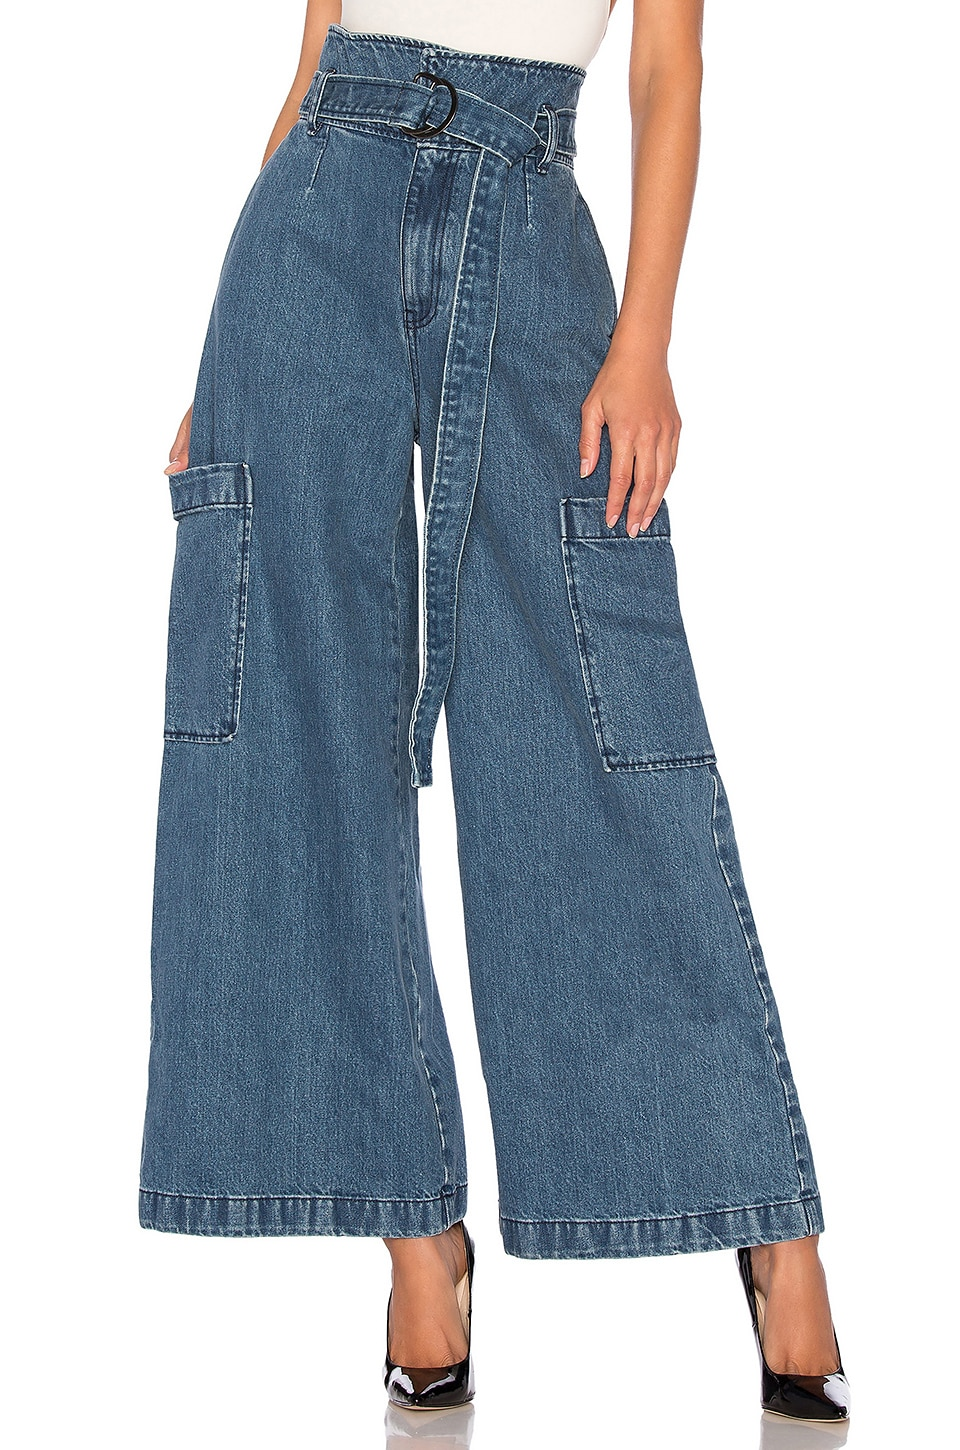 Dr. Denim High Waist Roni Trouser Jean in Mid Blue Wash